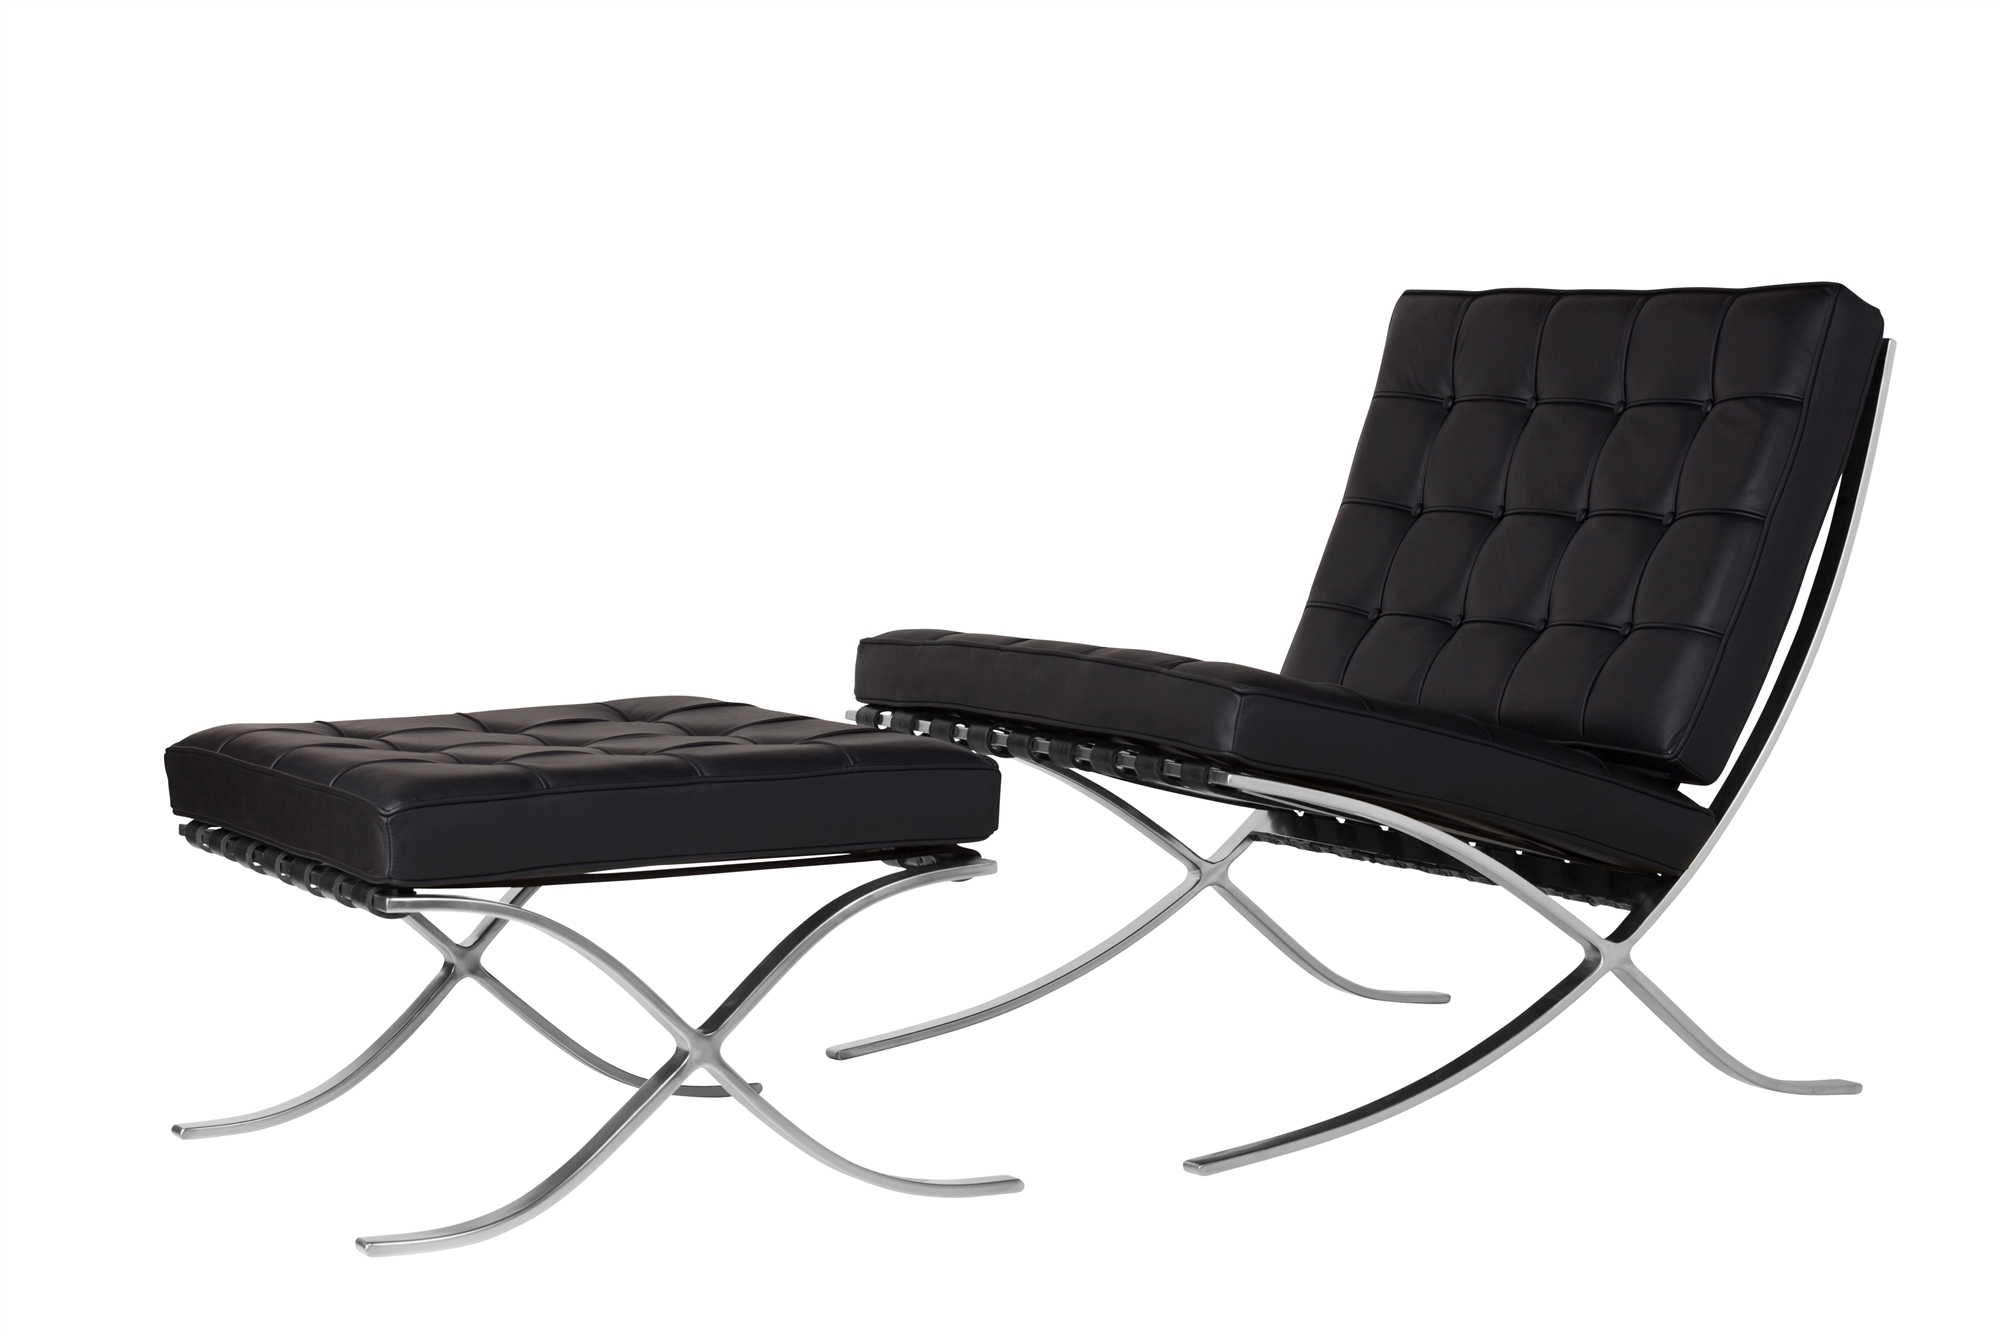 barcelona chair ottoman black leather brushed chrome barcelona chair ottoman black leather brushed chrome